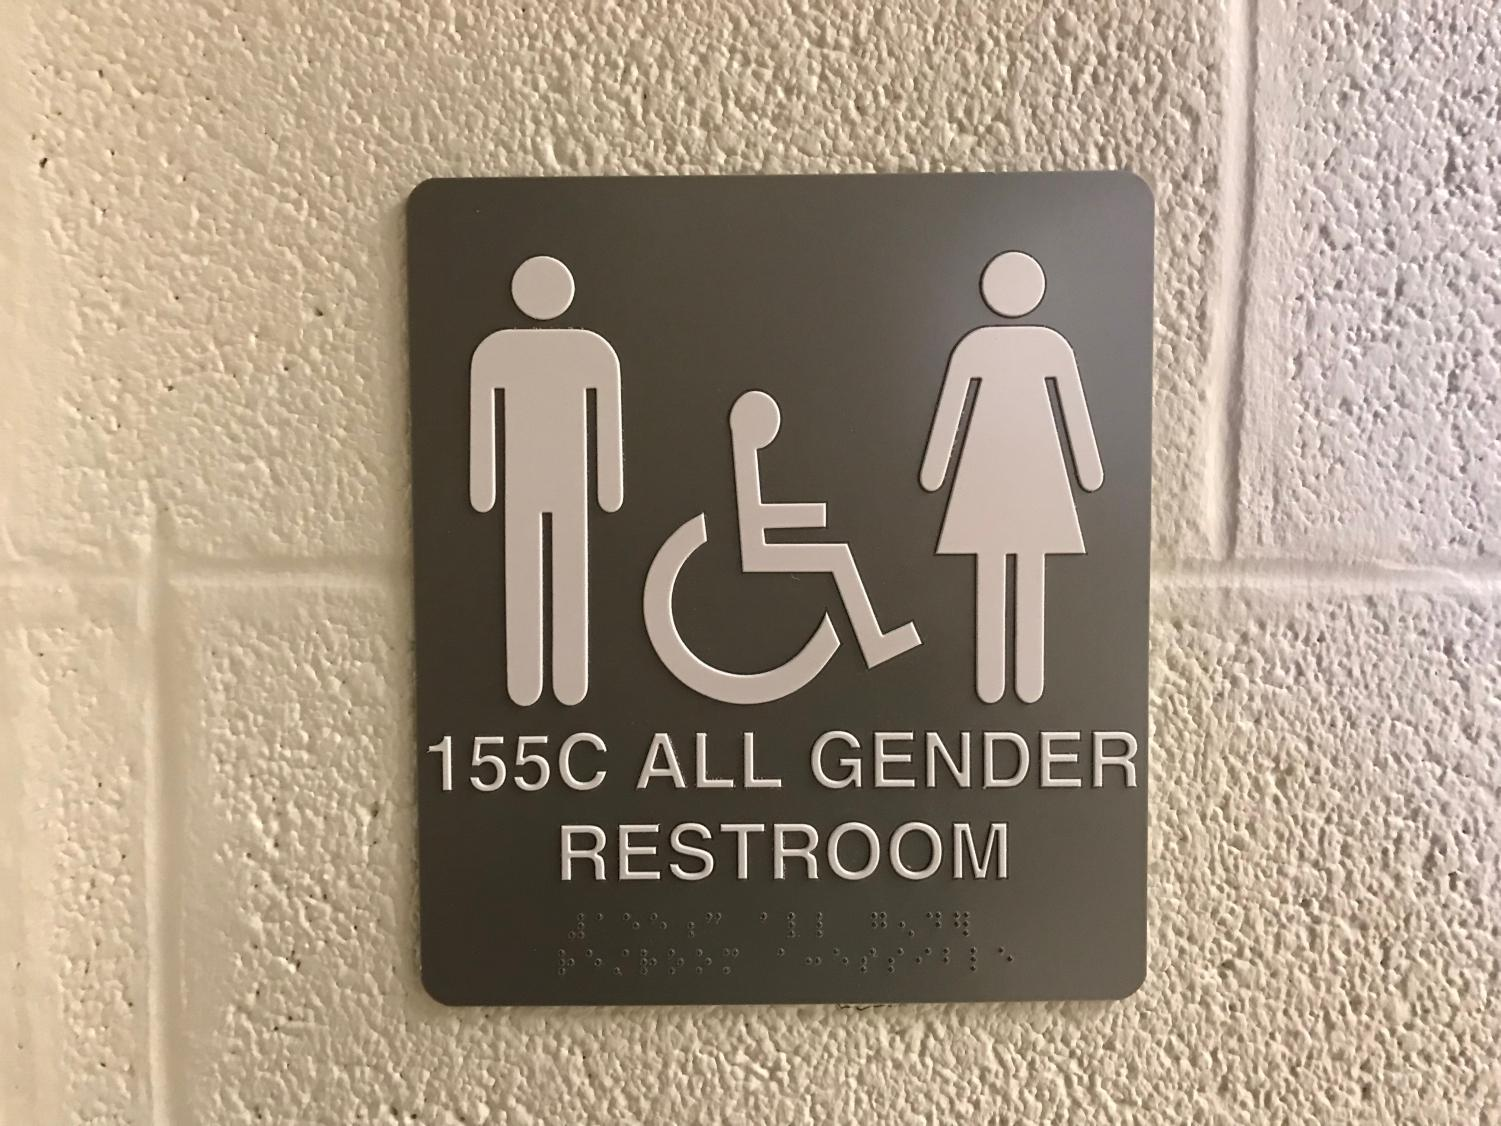 West High's first public gender-neutral restroom is located in the art hallway.